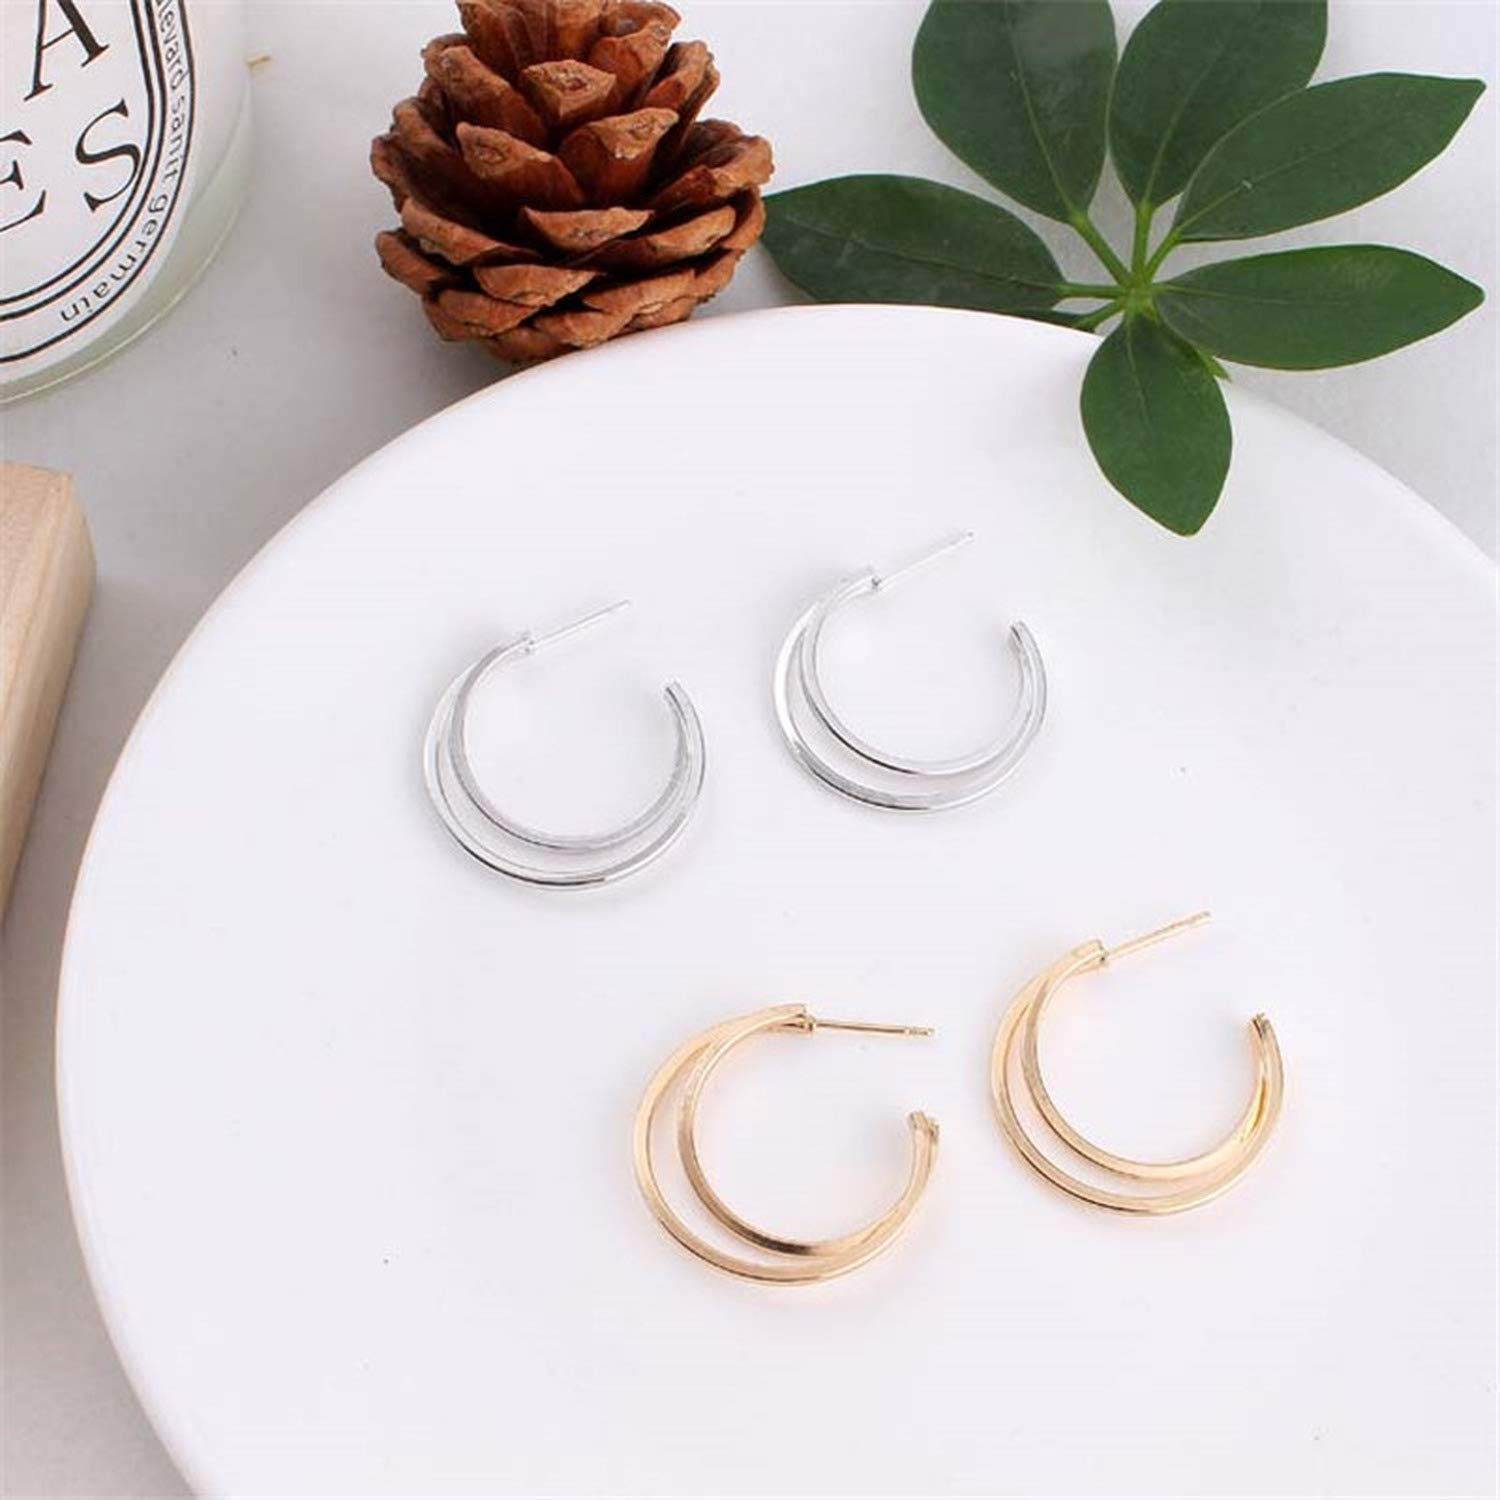 fashion Jewelry round stud earrings gold silver color Zircon earring brincos jewelry e0439